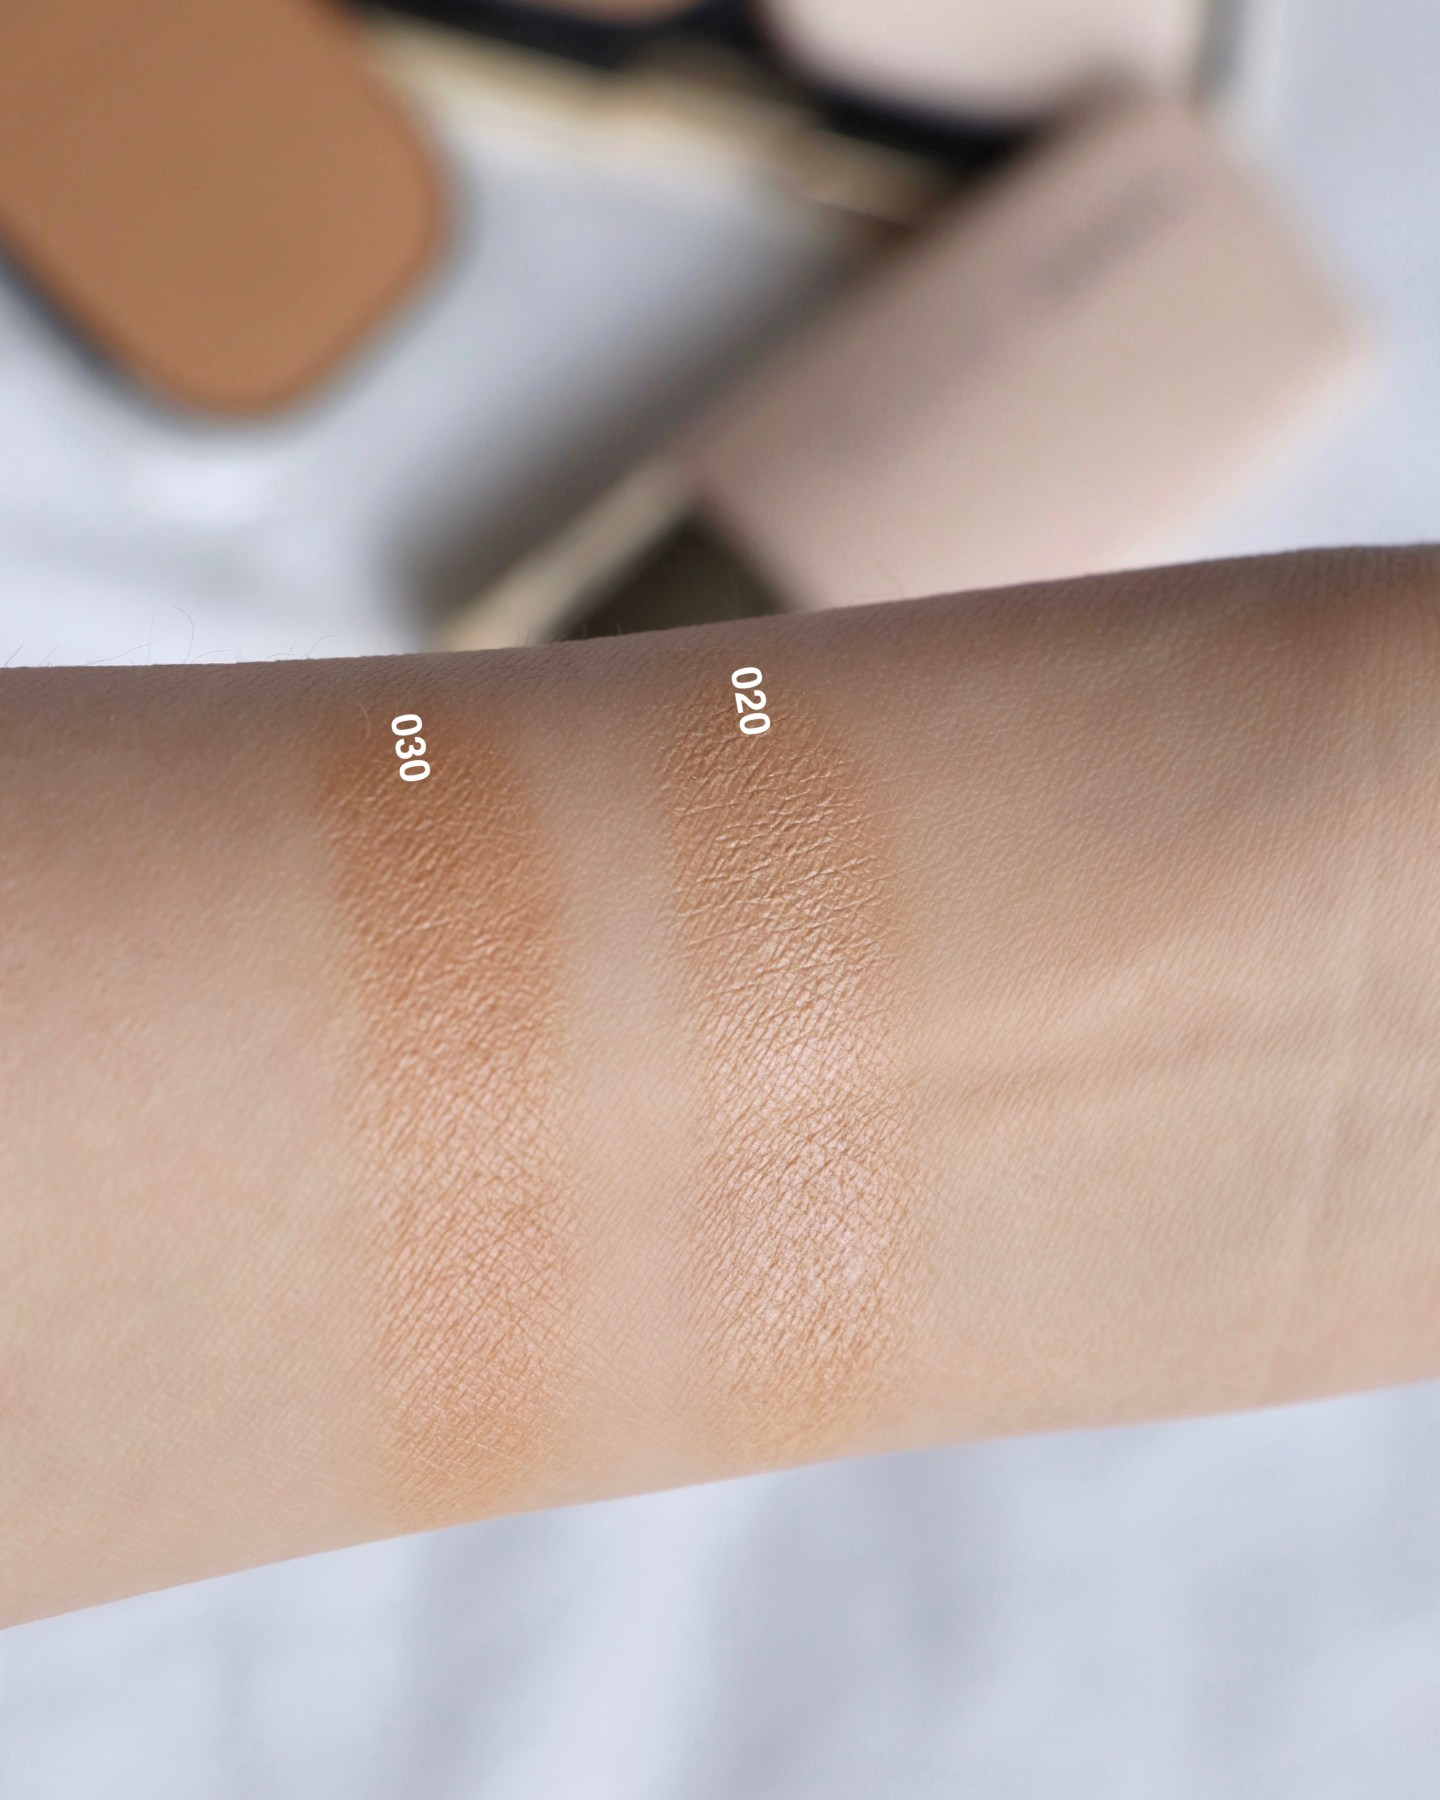 SUQQU Glow Powder Foundation Swatches